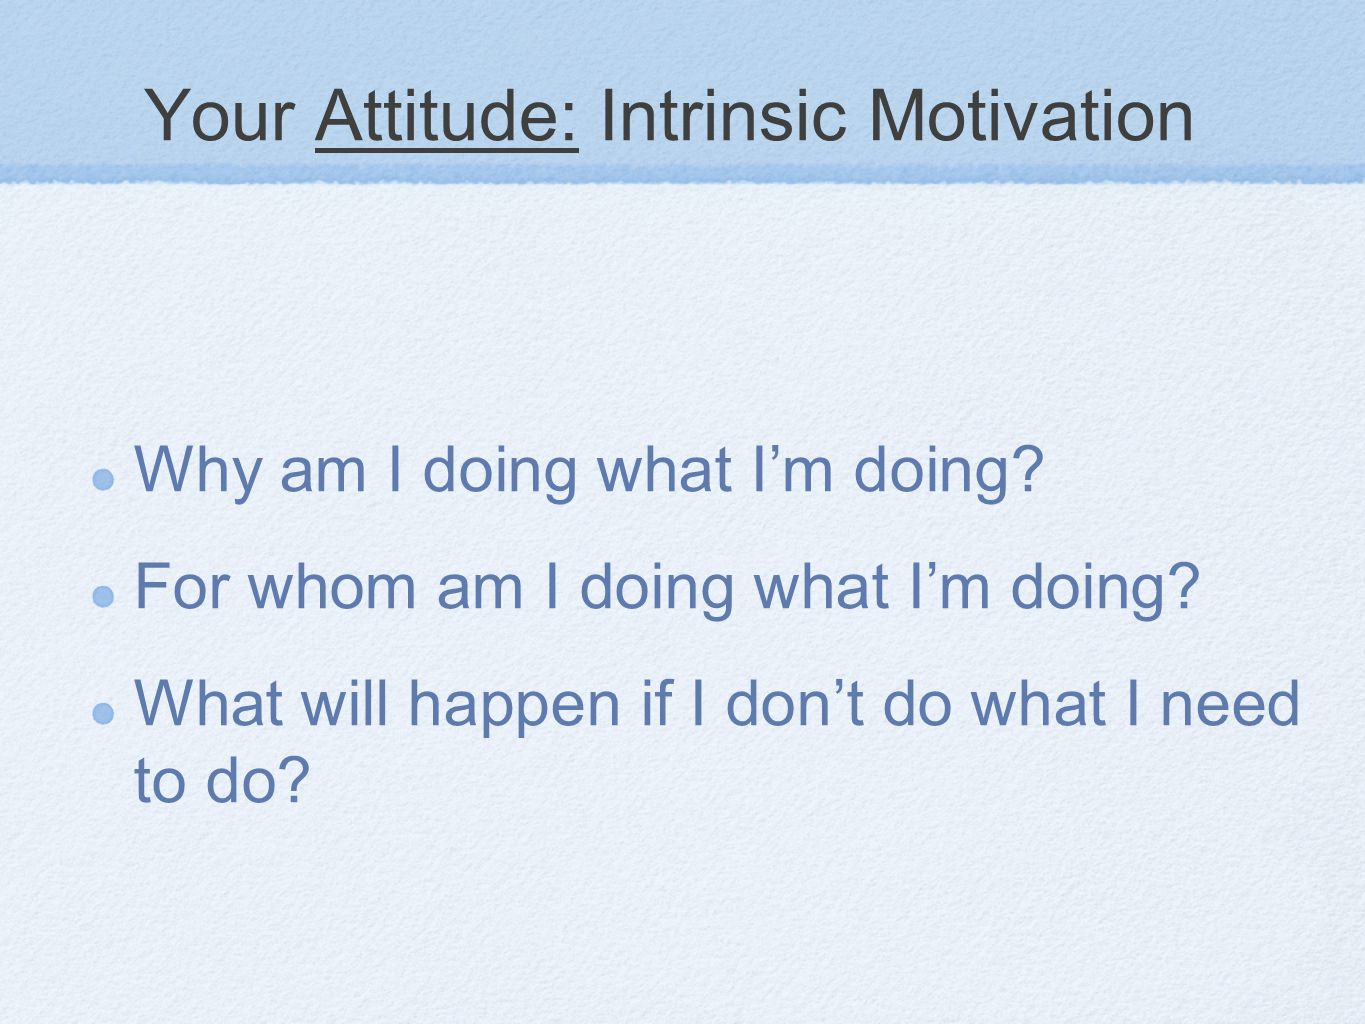 Your Attitude: My values What are my values? What do I value doing? Why does this _______ matter?